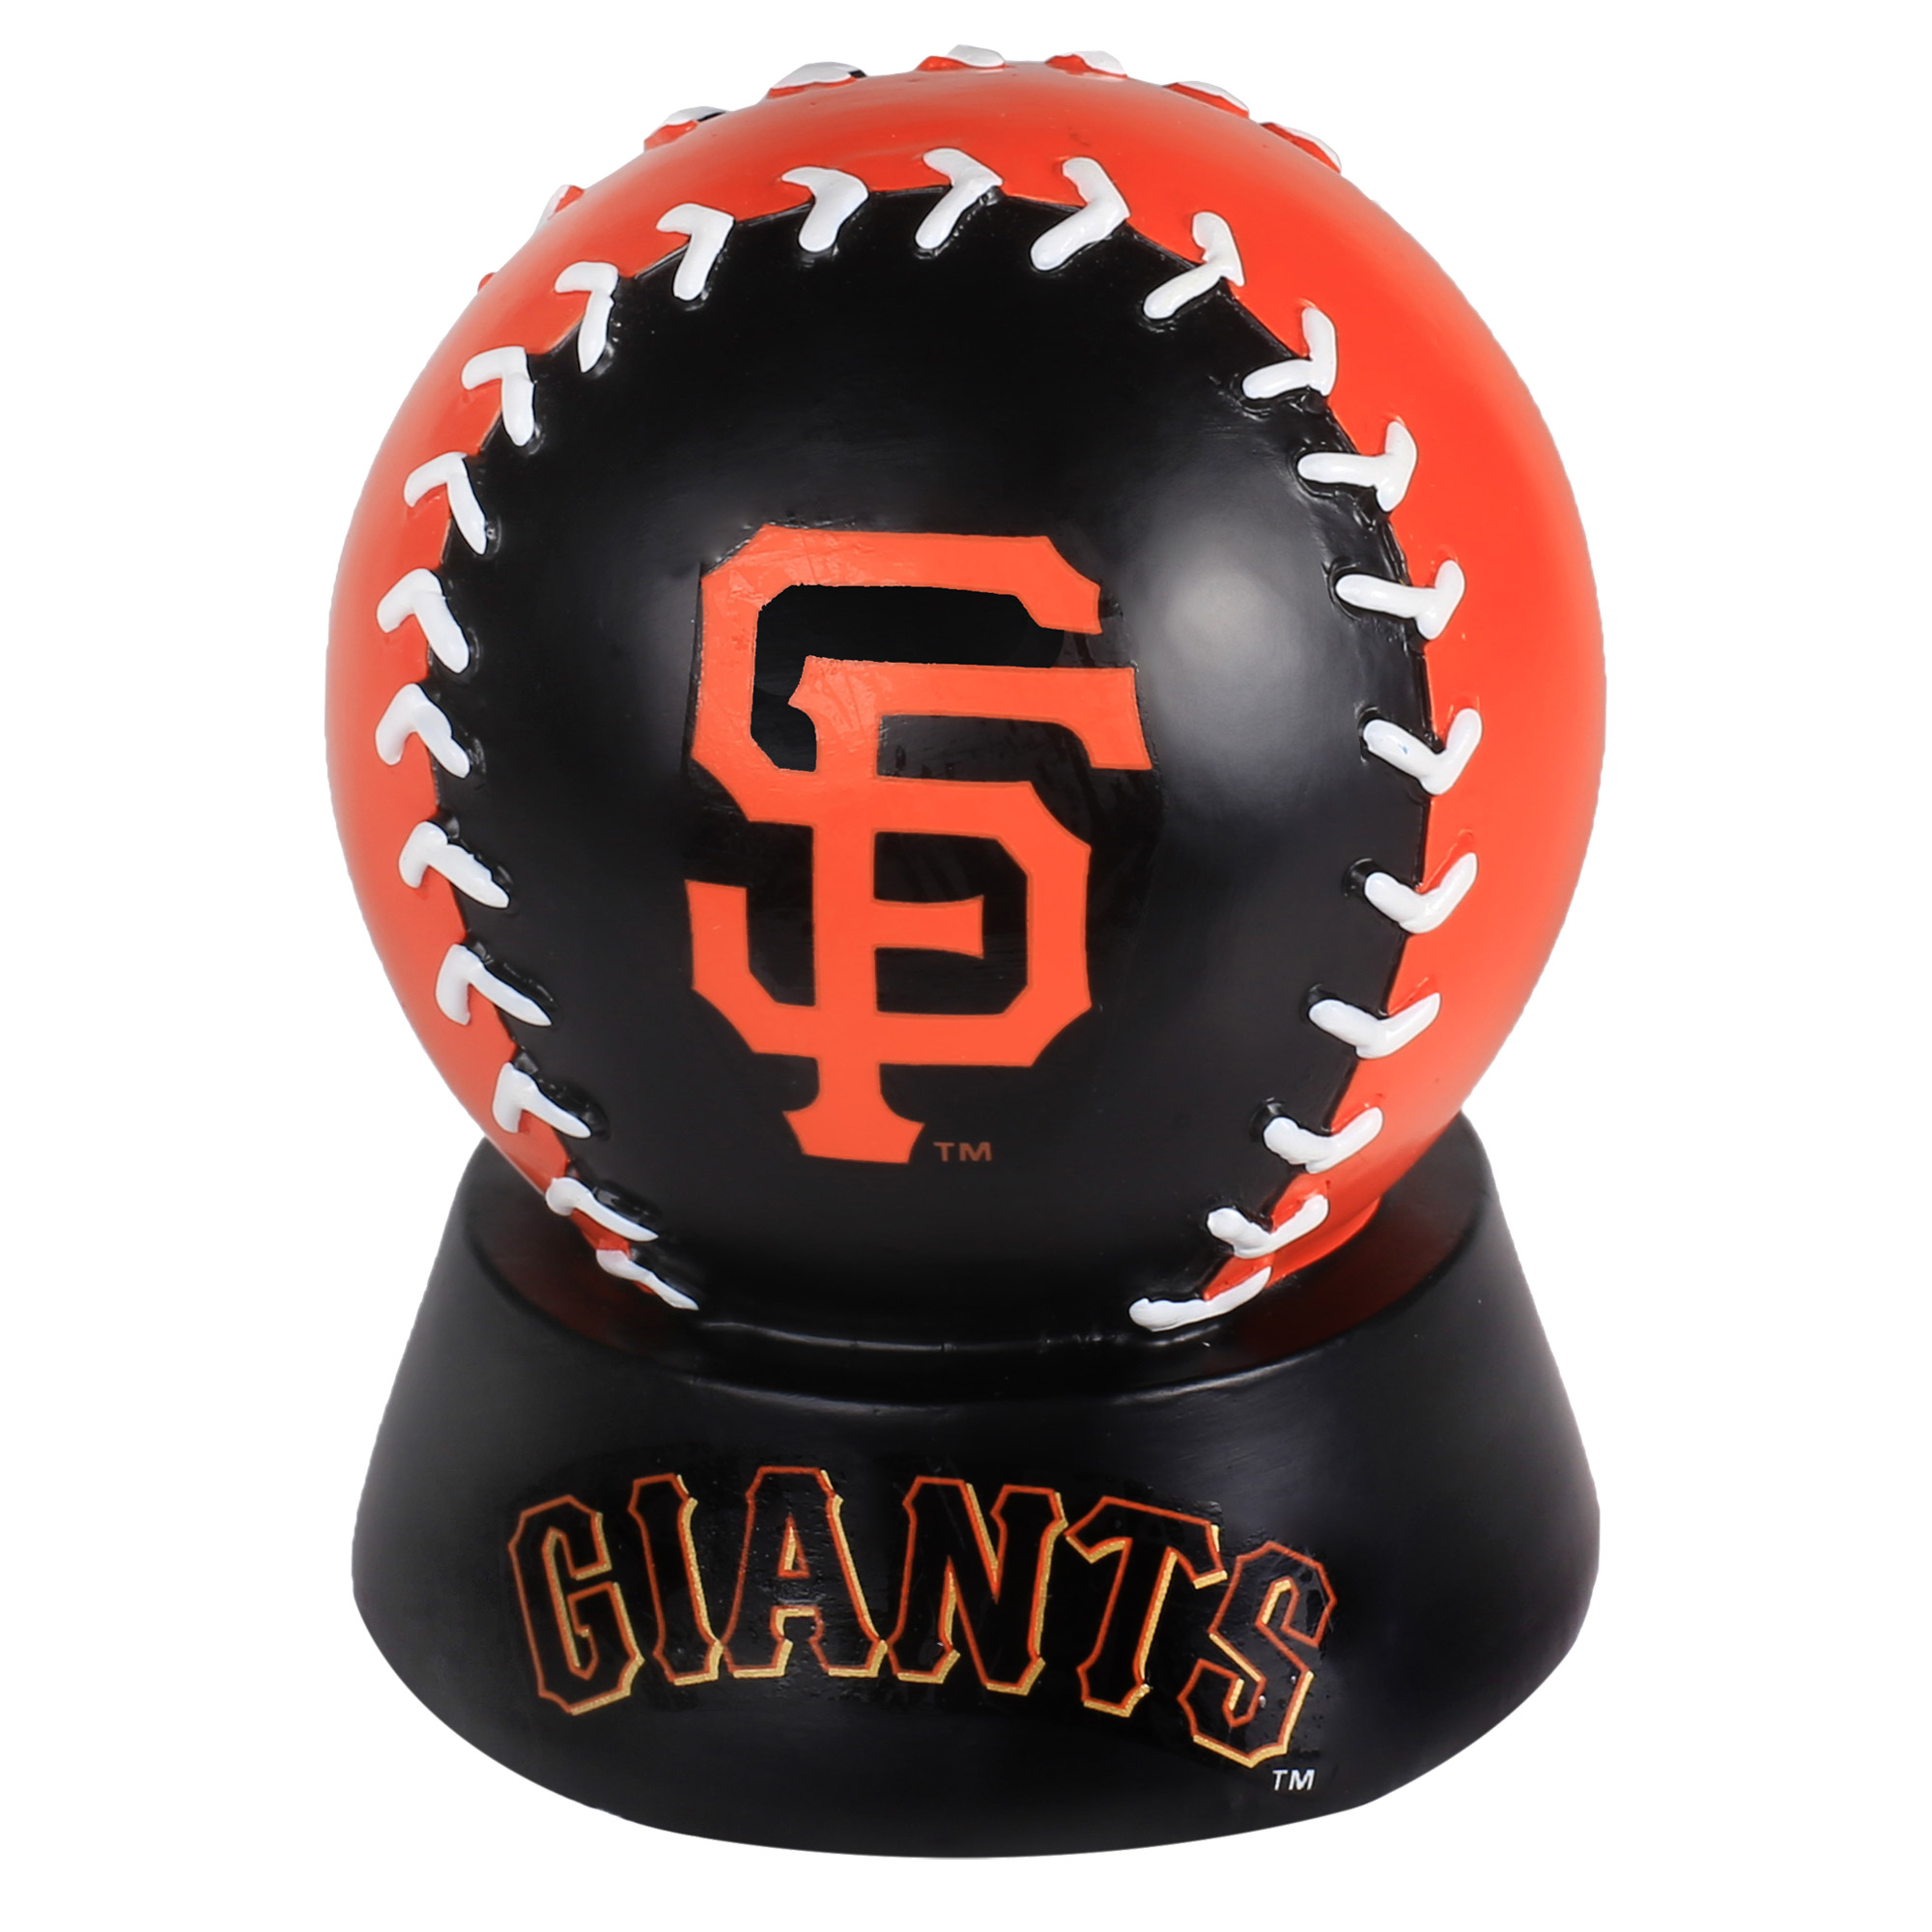 San Francisco Giants Baseball Display Paperweight - No Size